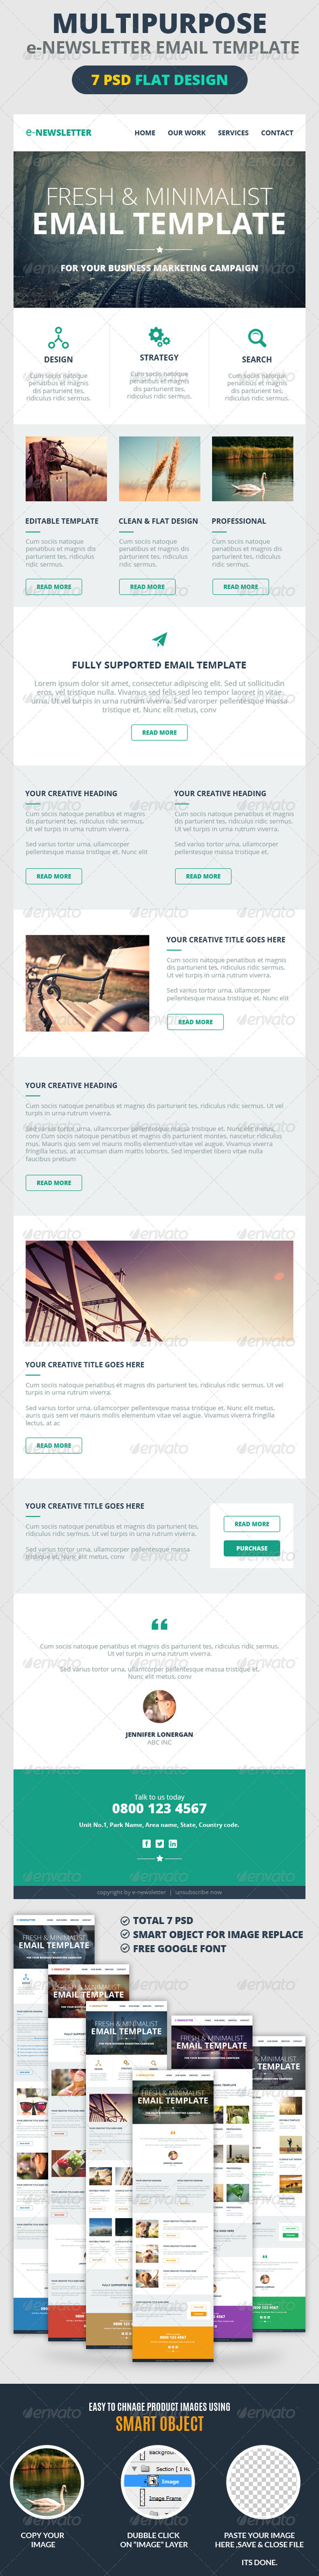 Multipurpose E-Newsletter Email Template - E-newsletters Web Elements